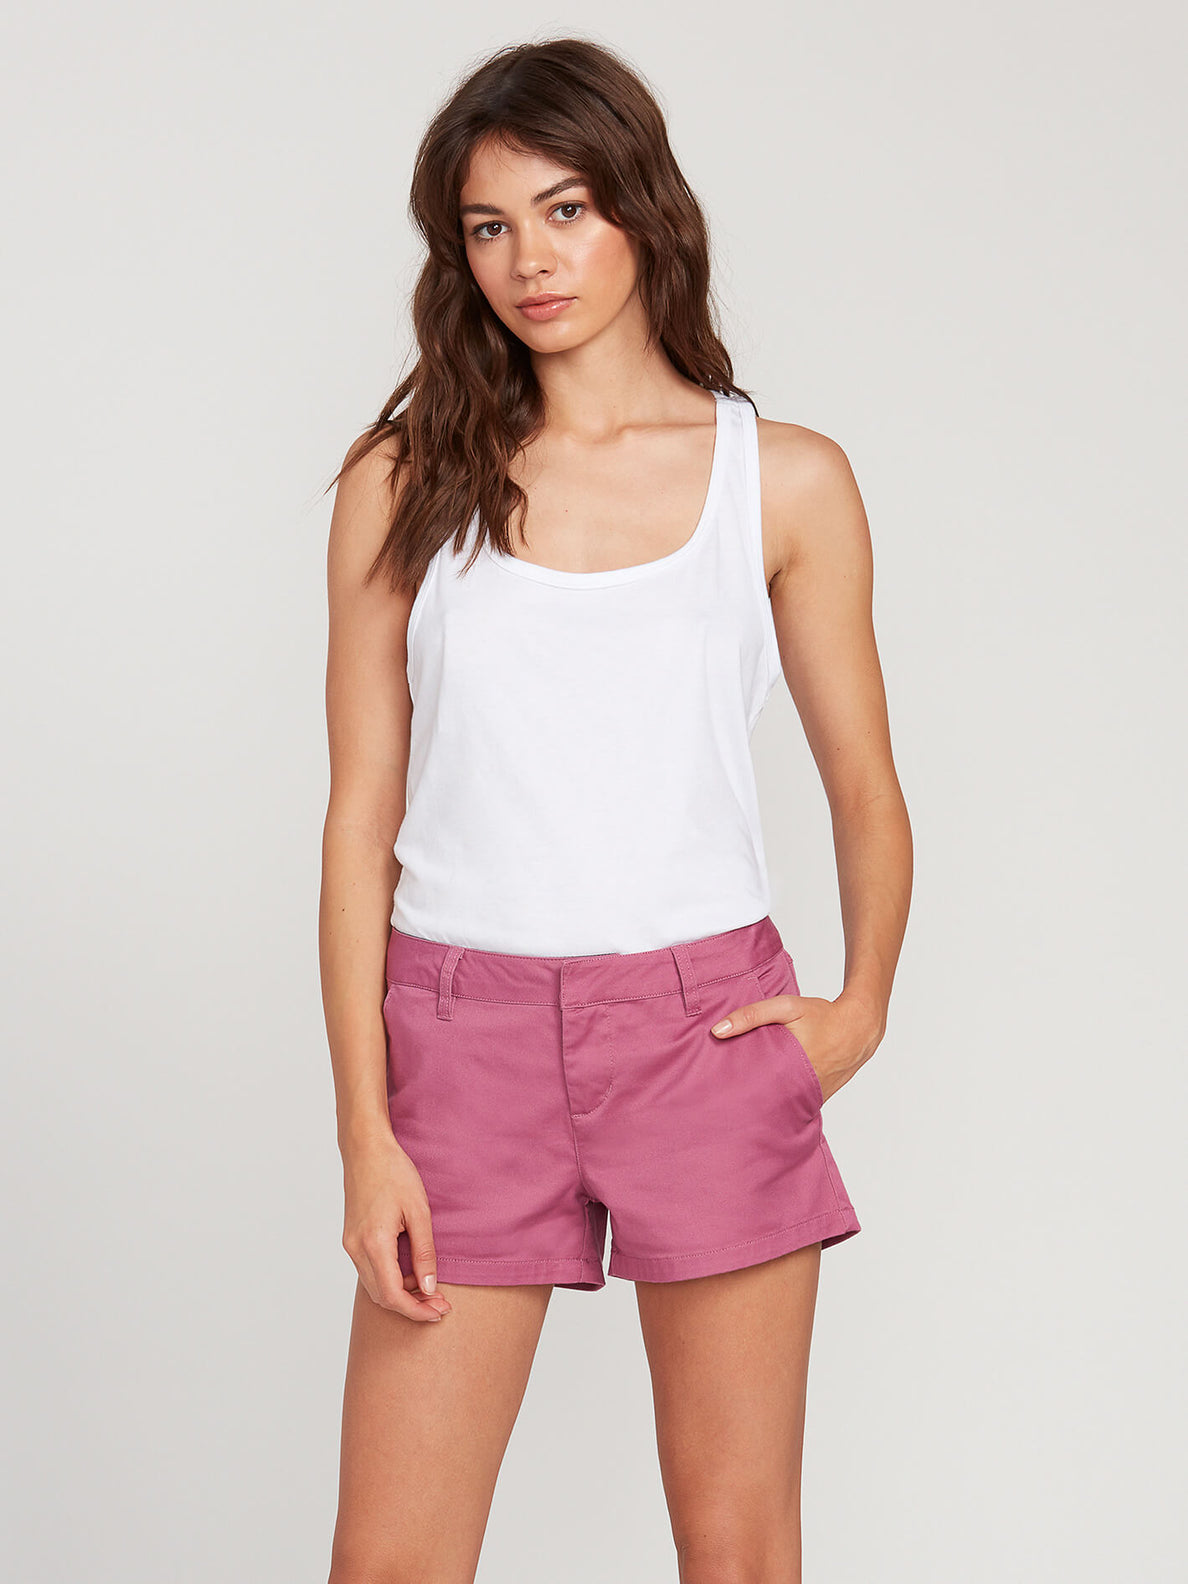 Frochickie Short - Mauve Rose (B0911800_MVR) [F]